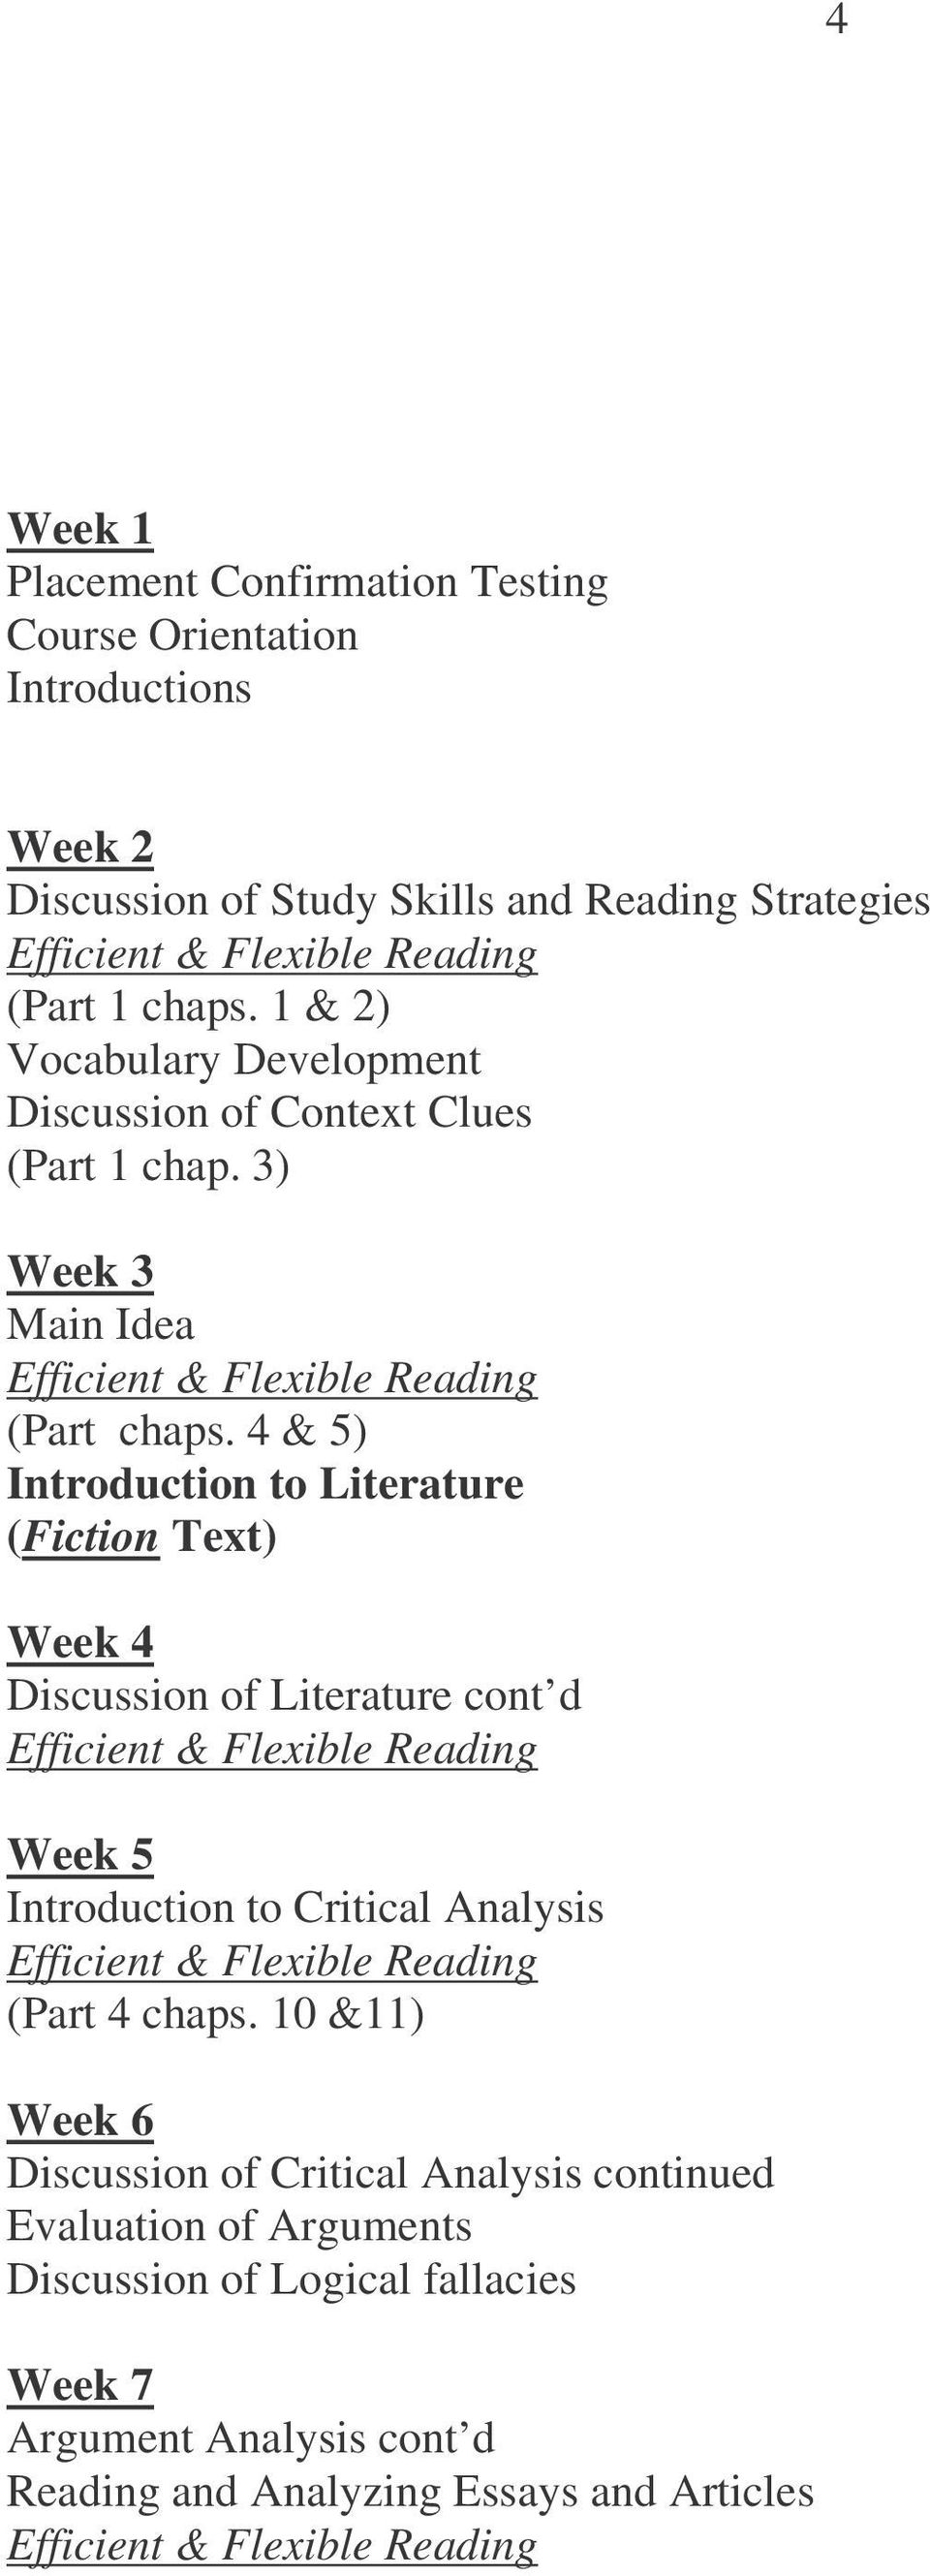 4 & 5) Introduction to Literature (Fiction Text) Week 4 Discussion of Literature cont d Week 5 Introduction to Critical Analysis (Part 4 chaps.